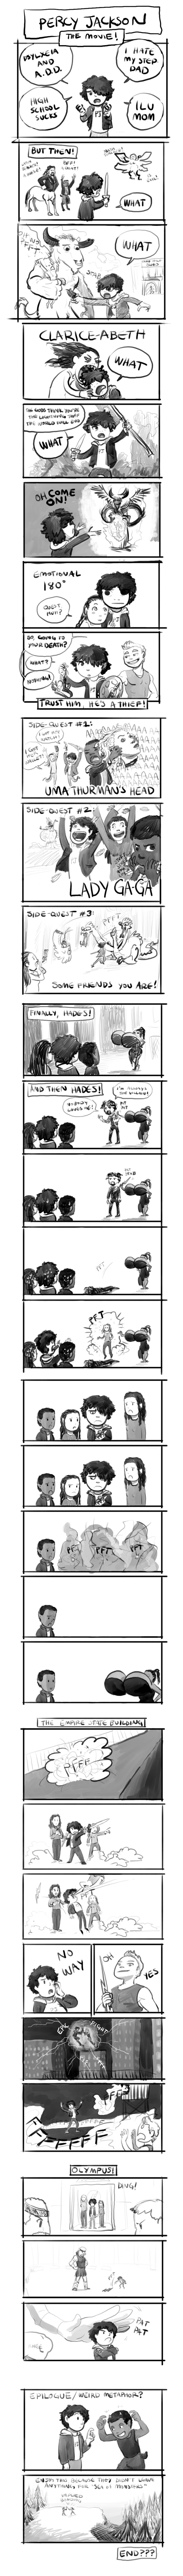 Percy Jackson the Movie by invalidgriffin.deviantart.com on @deviantART--this is the best thing ever. How bad the movie was.